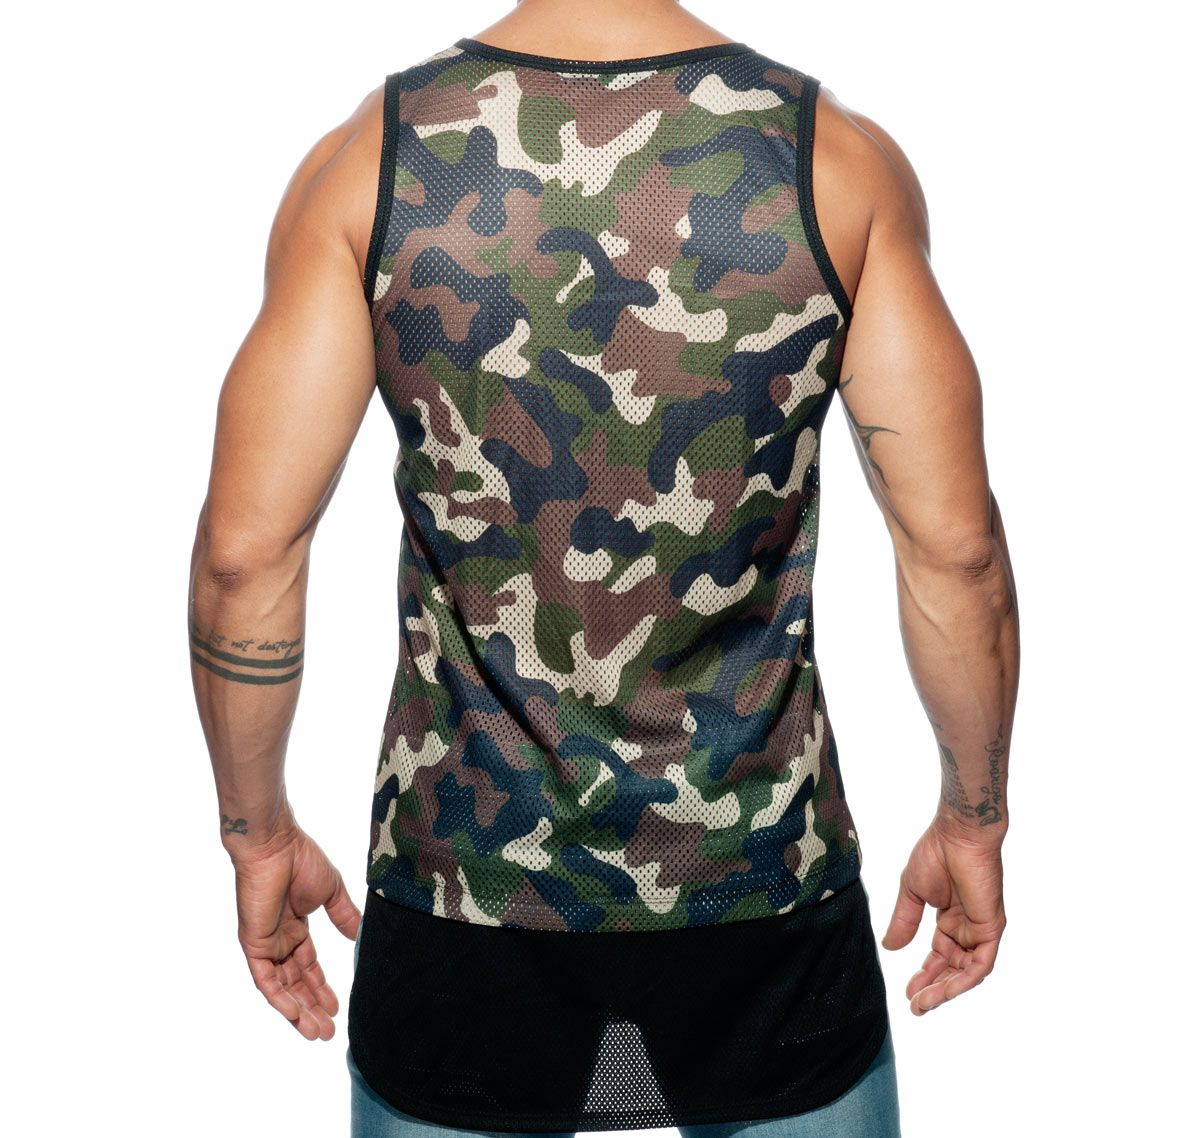 Addicted Sportshirt #ADDICTED#ORGINAL TANK TOP AD634, camouflage